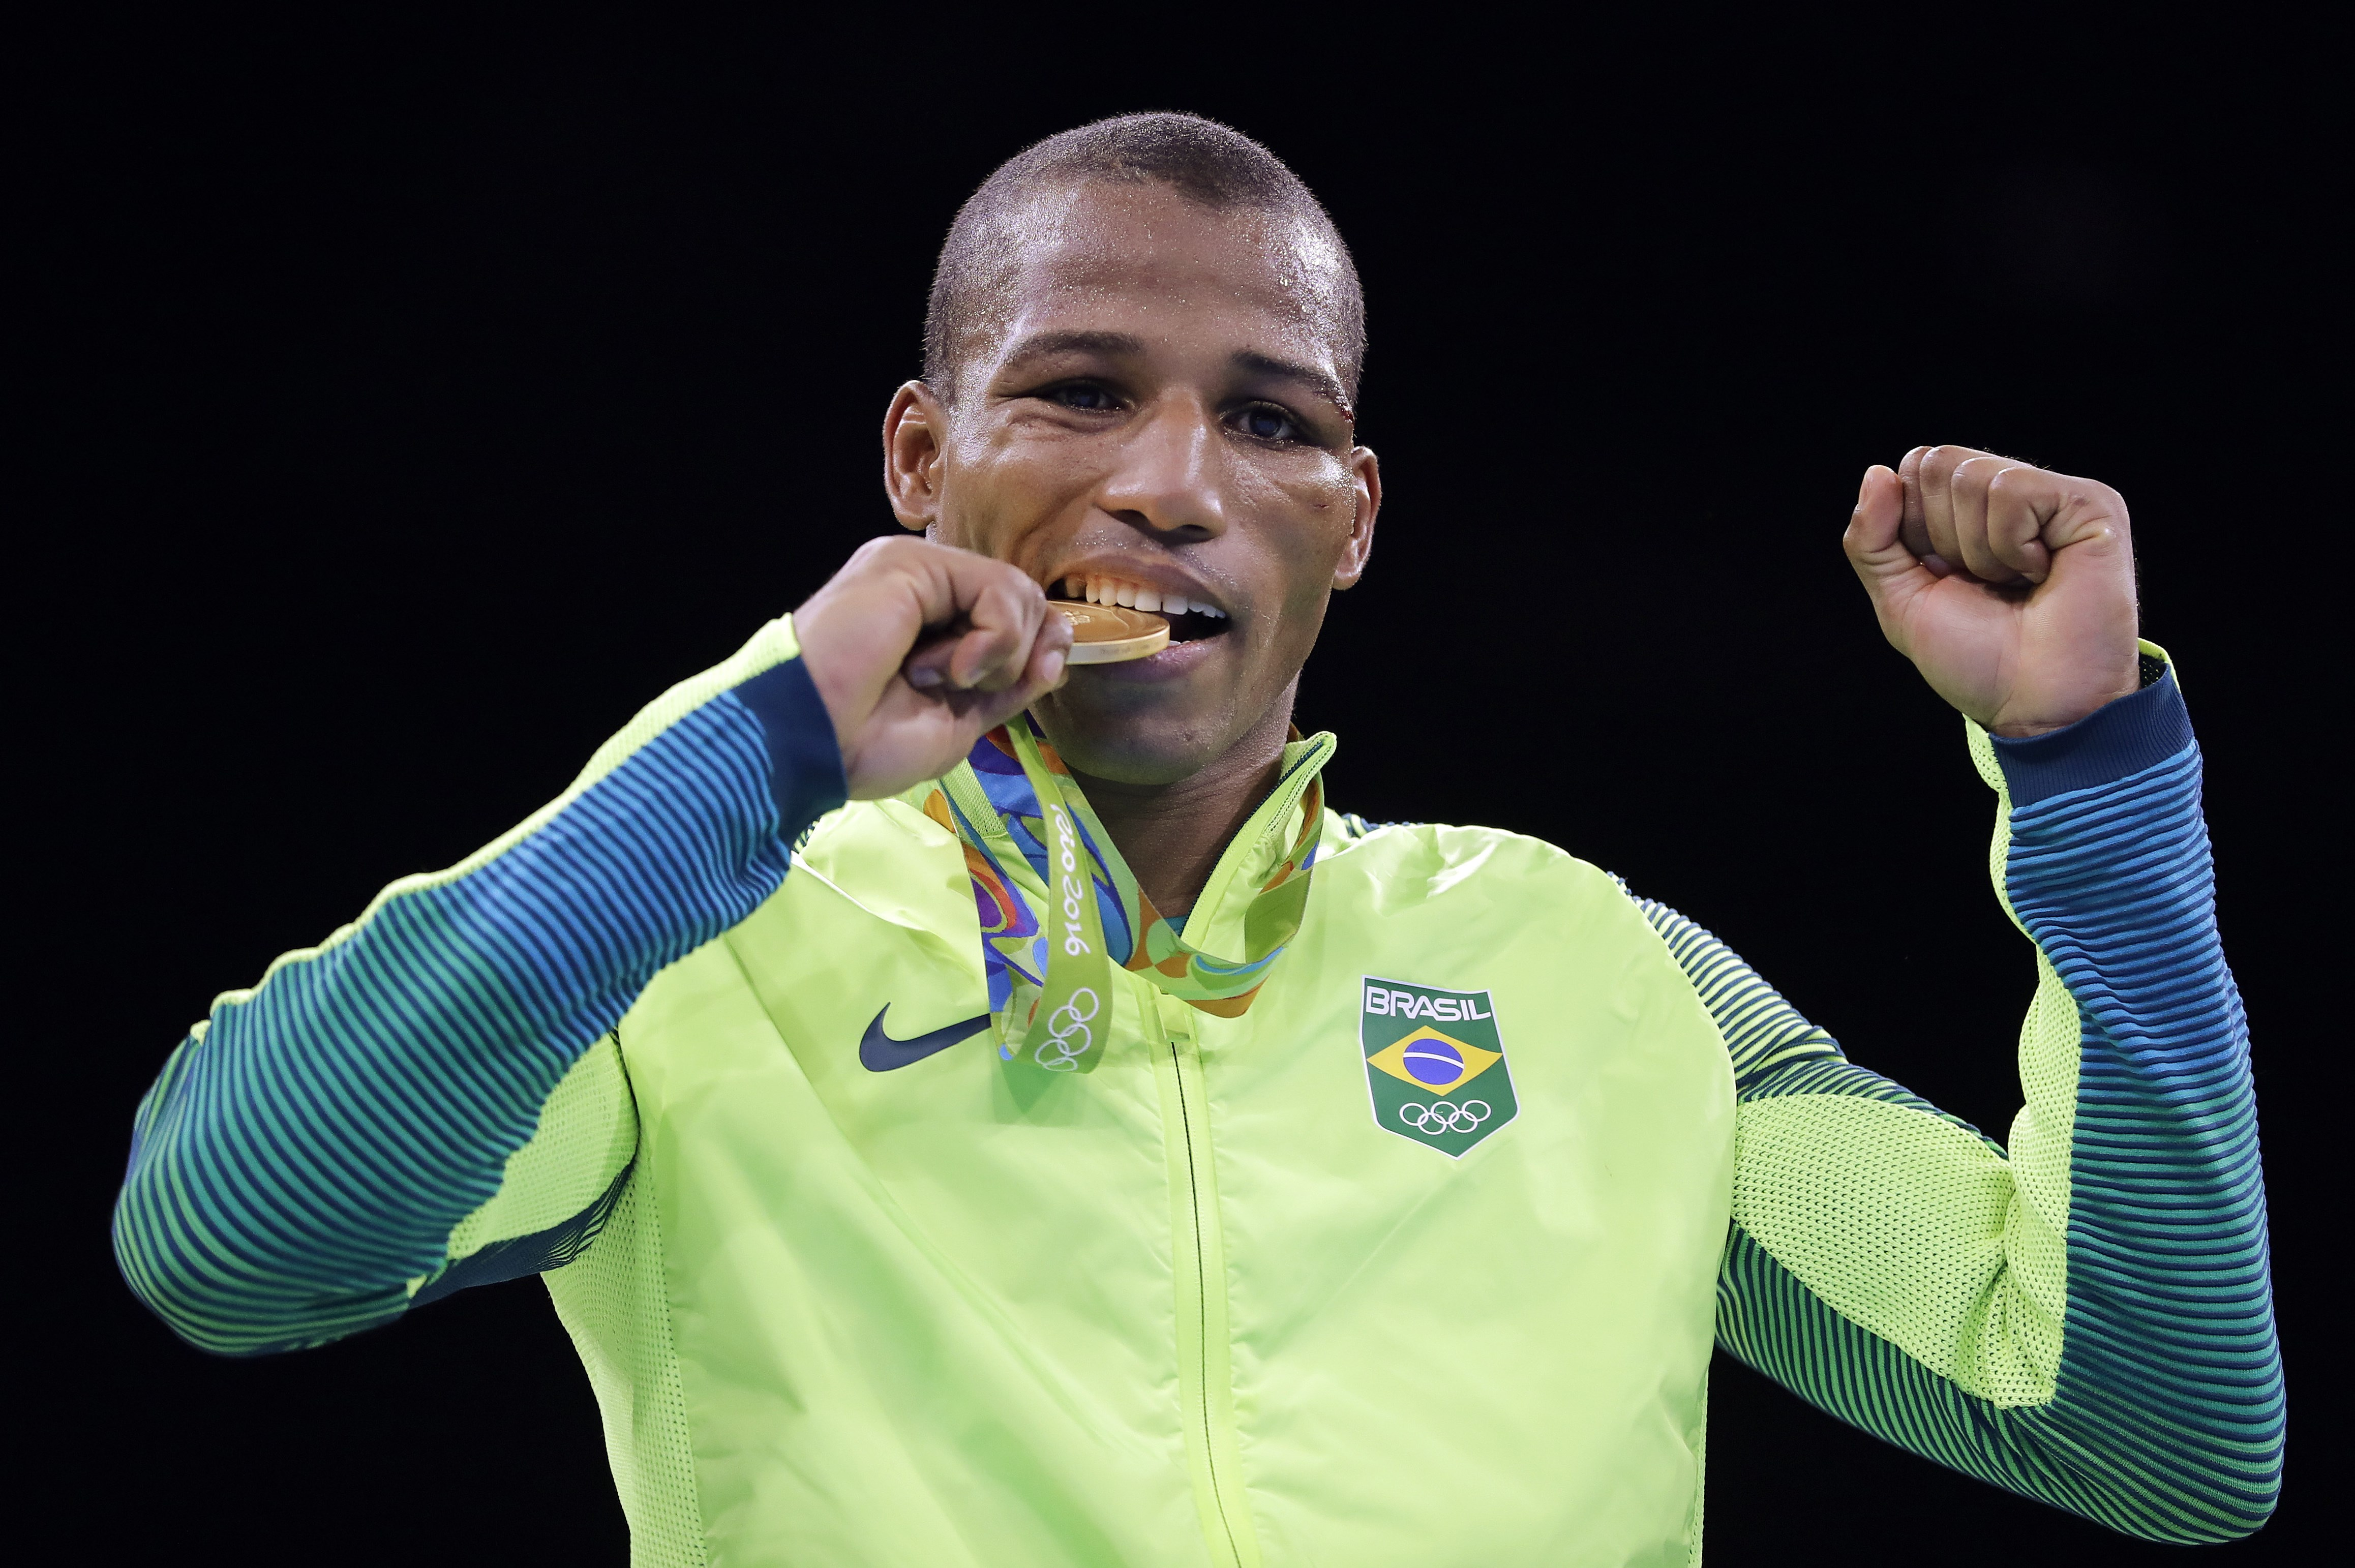 Brazil's Robson Conceicao bites his gold medal for the men's lightweight 60-kg final boxing at the 2016 Summer Olympics in Rio de Janeiro, Brazil, Tuesday, Aug. 16, 2016. (AP Photo/Jae C. Hong)